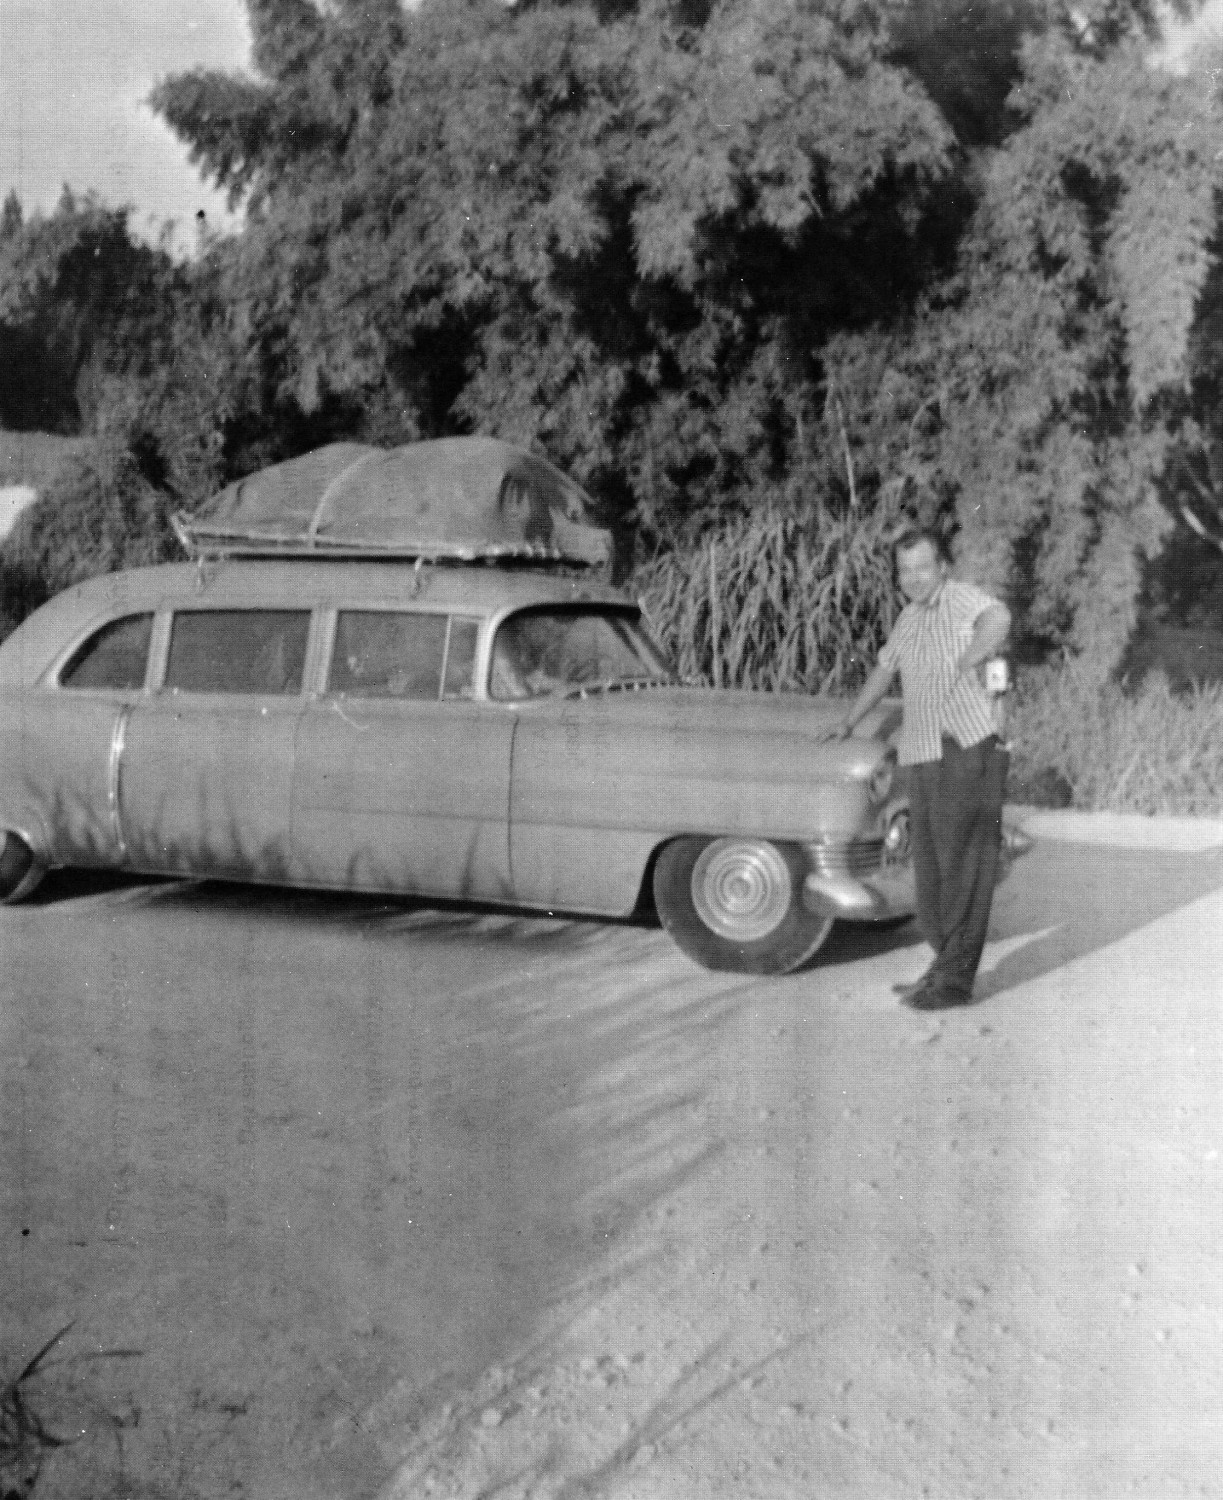 Bill Black '54 Cadillac Fleetwood Limo